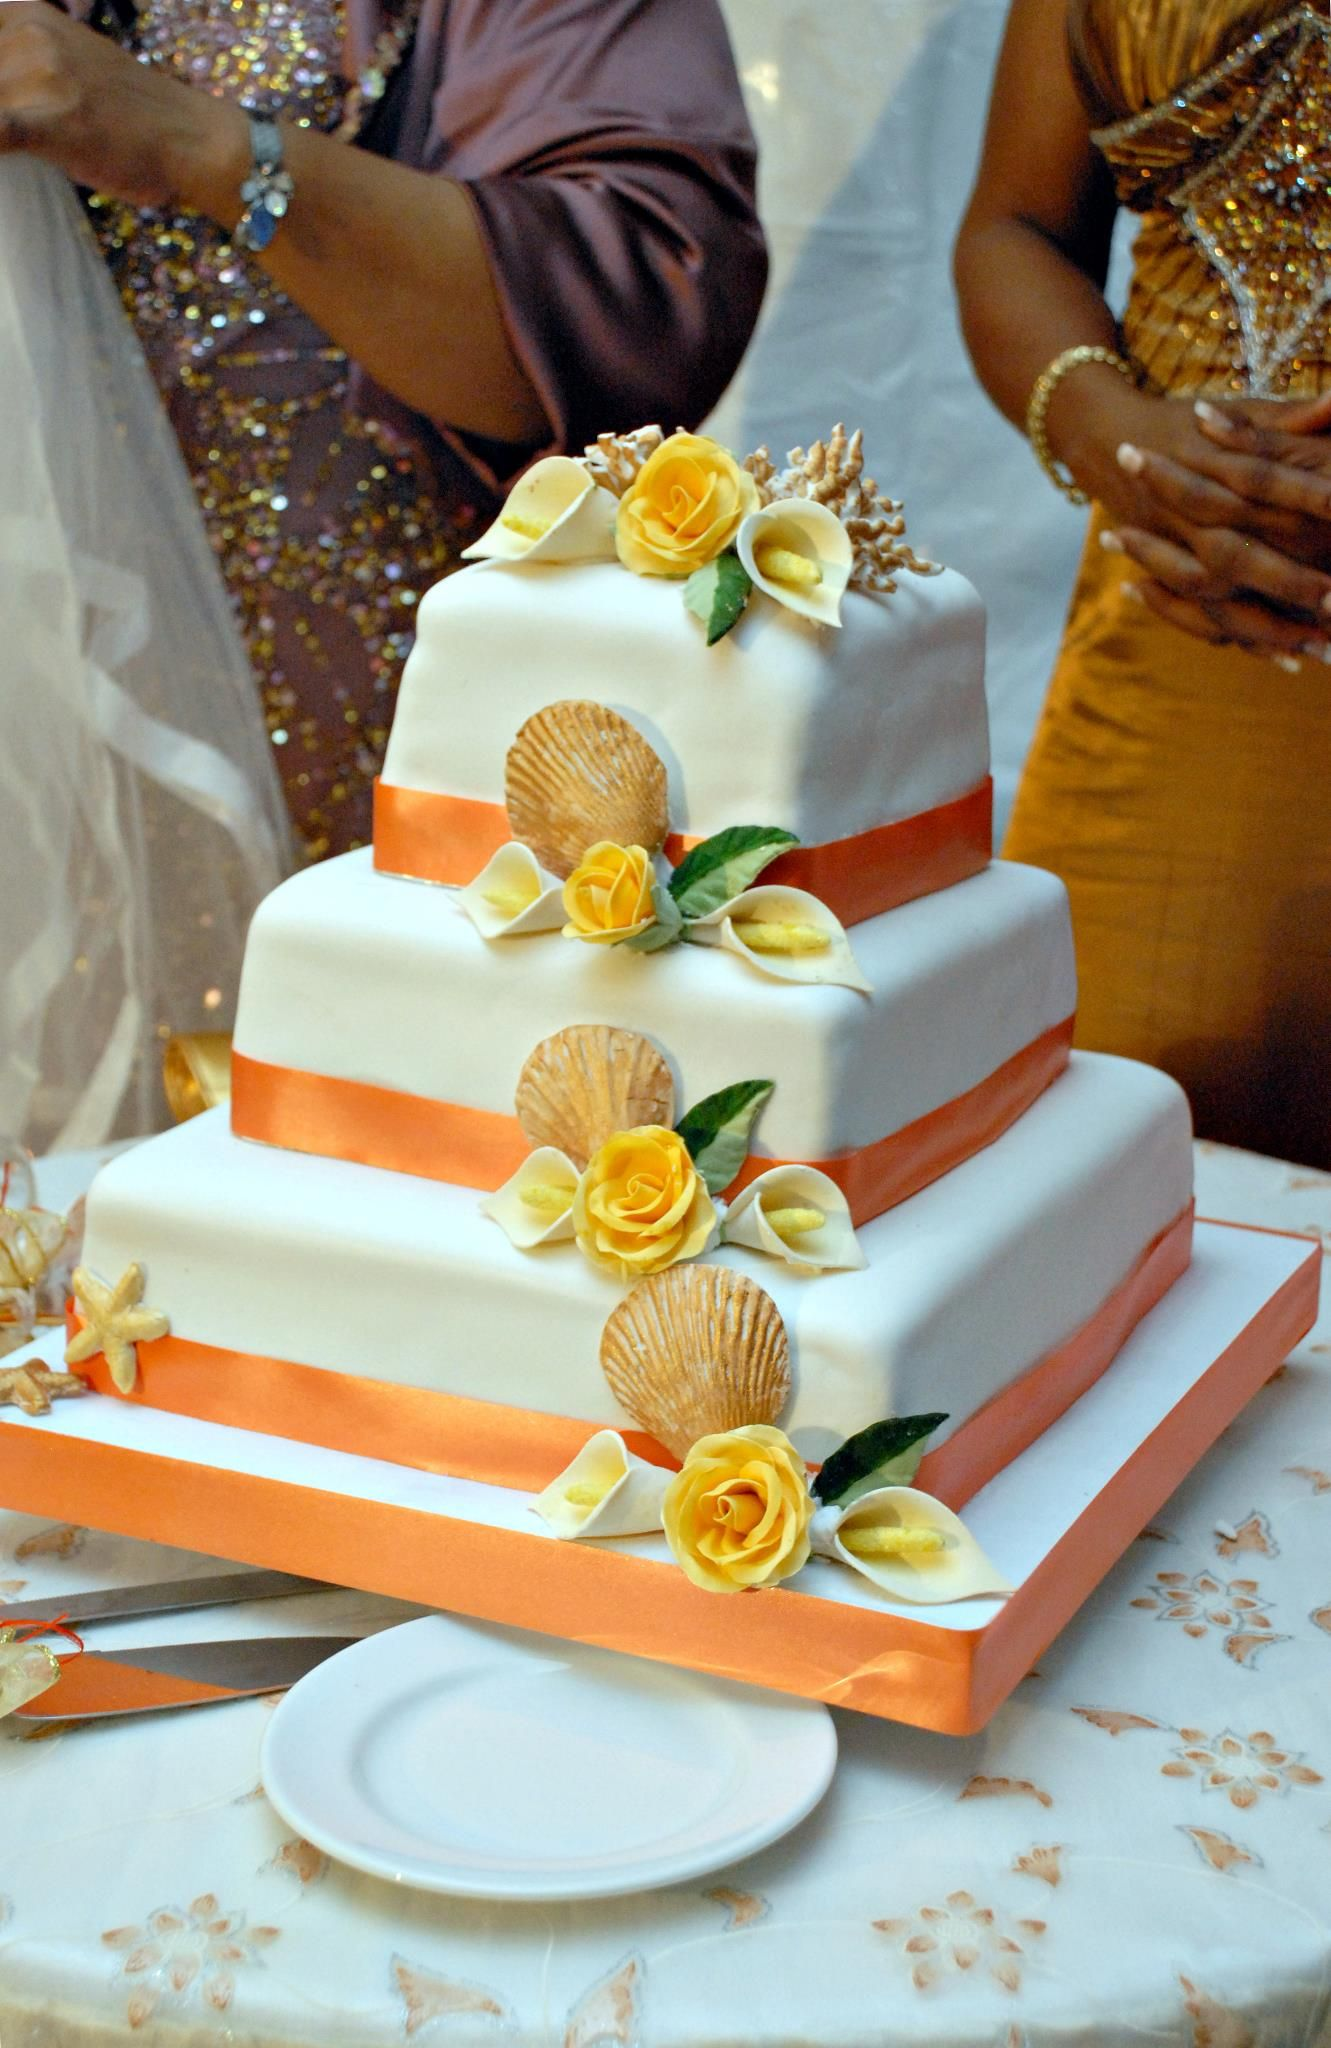 By Helen G Events Wedding Cake Jamaica 3 Tier Wedding Cake Square Wedding Cake Jamaica Wedding Square Wedding Cakes Wedding Cake Peach Wedding Cake Prices